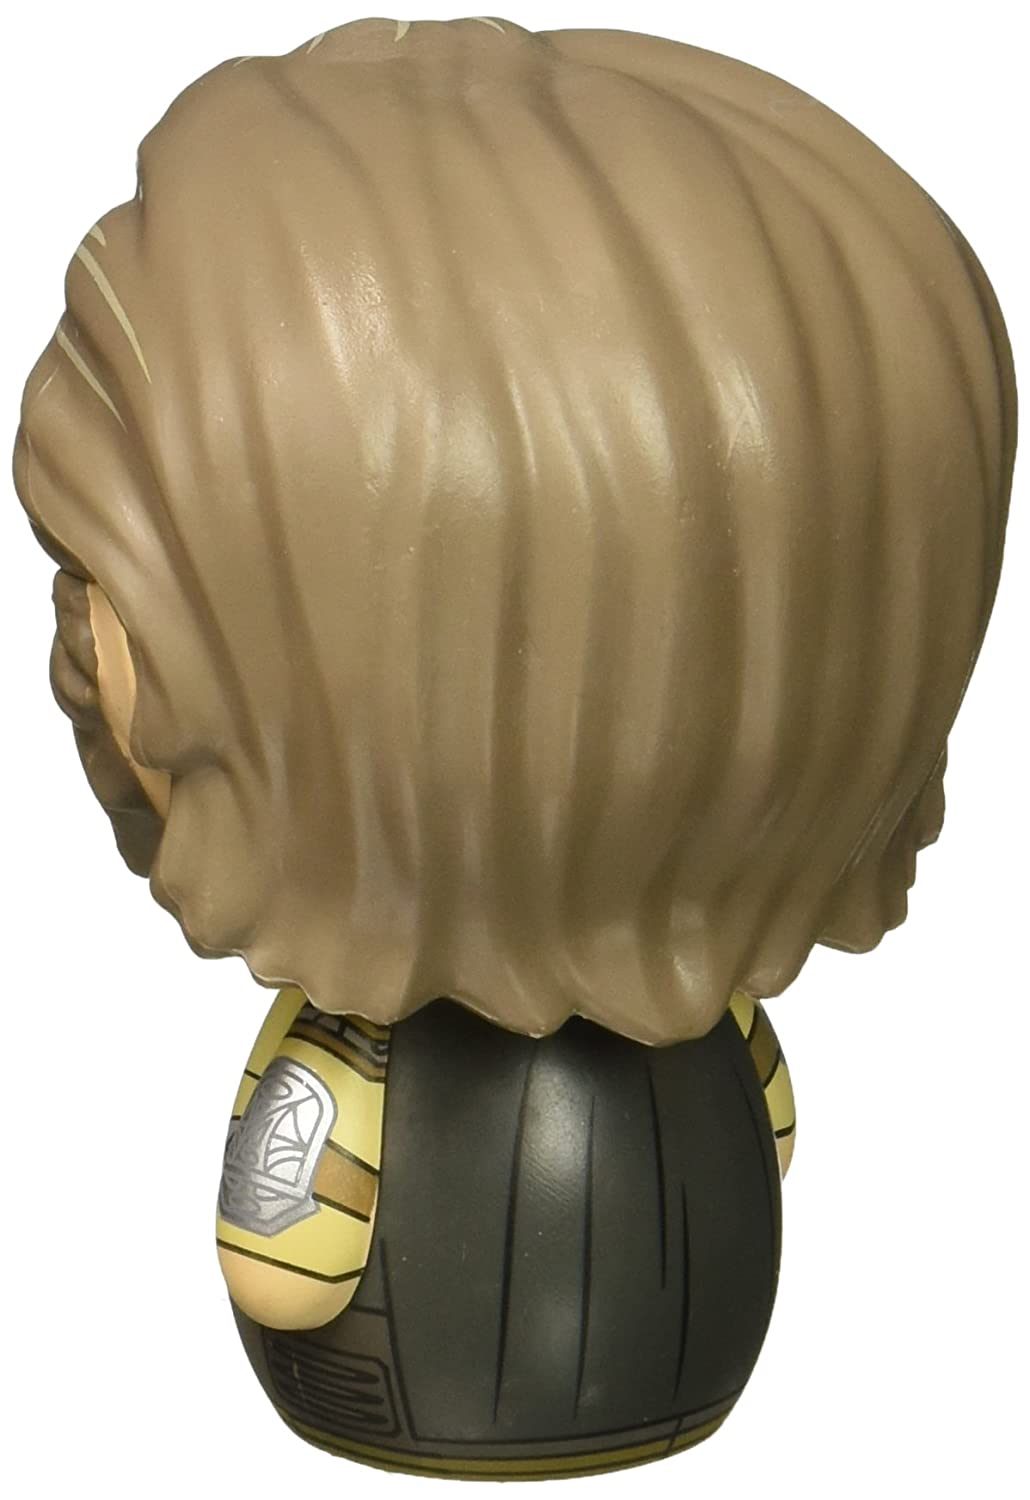 Guardians of the Galaxy 2 Ego Toy Figure 12761 Accessory Toys /& Games Miscellaneous Funko Dorbz